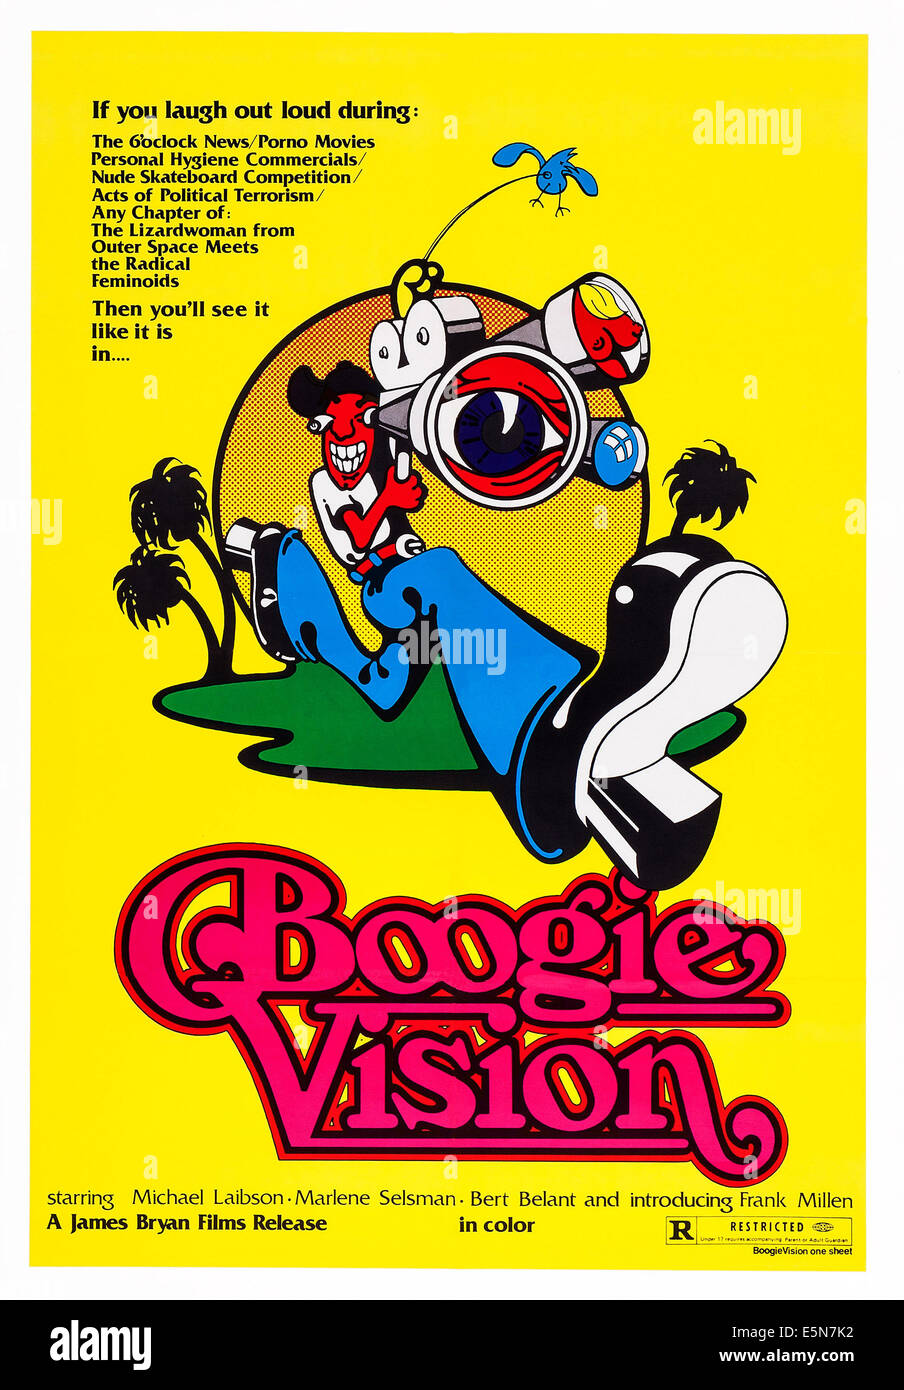 BOOGIEVISION, US poster, 1977 Stock Photo